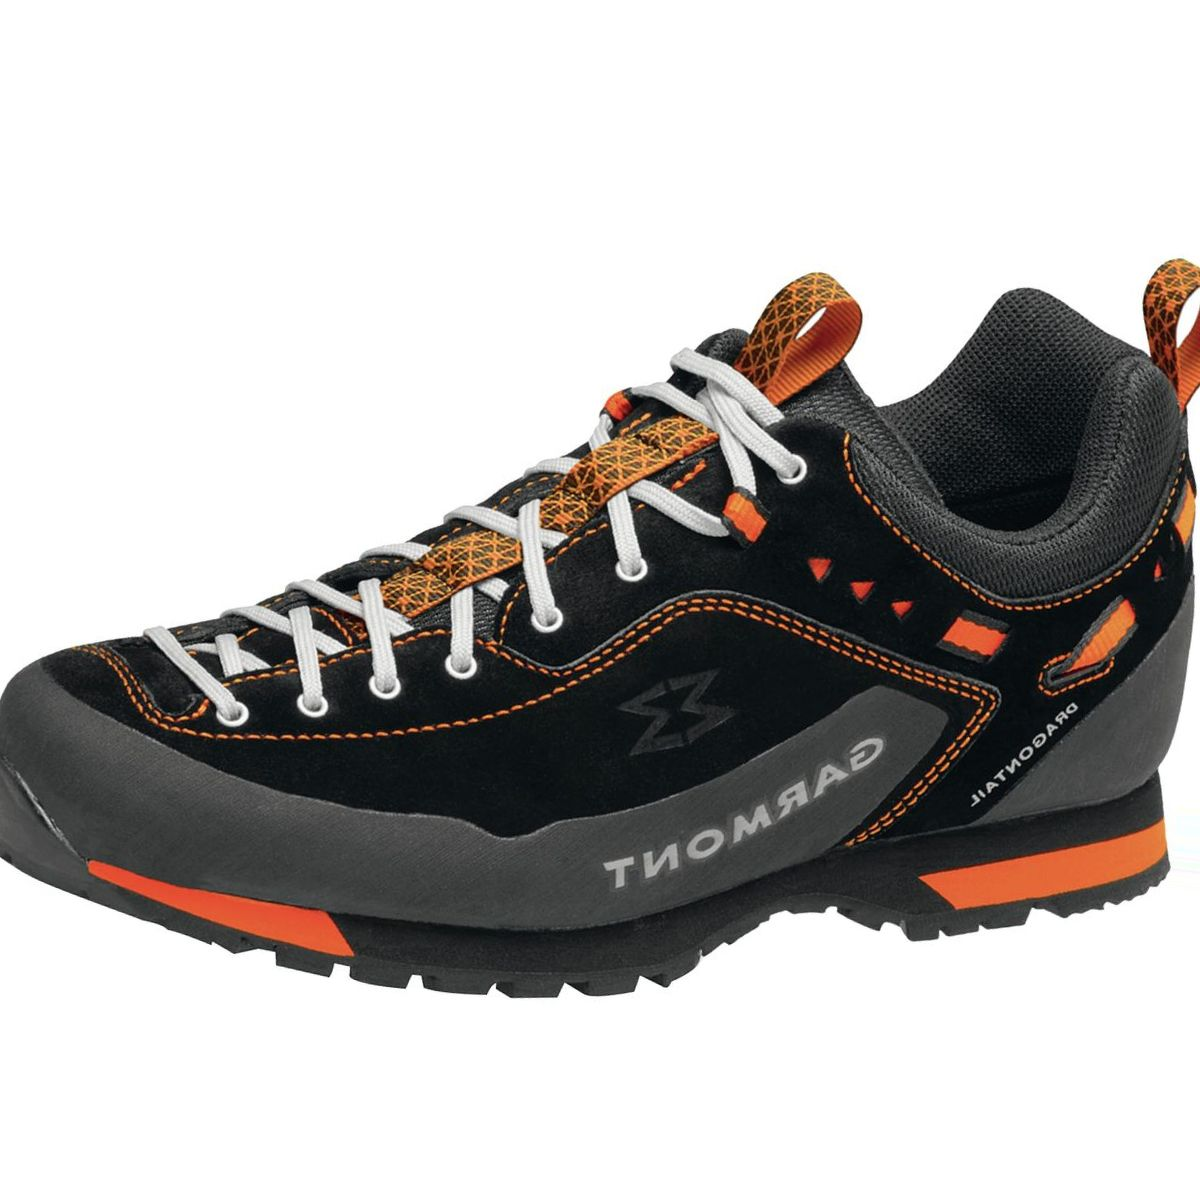 Garmont Dragontail LT Approach Shoe - Men's